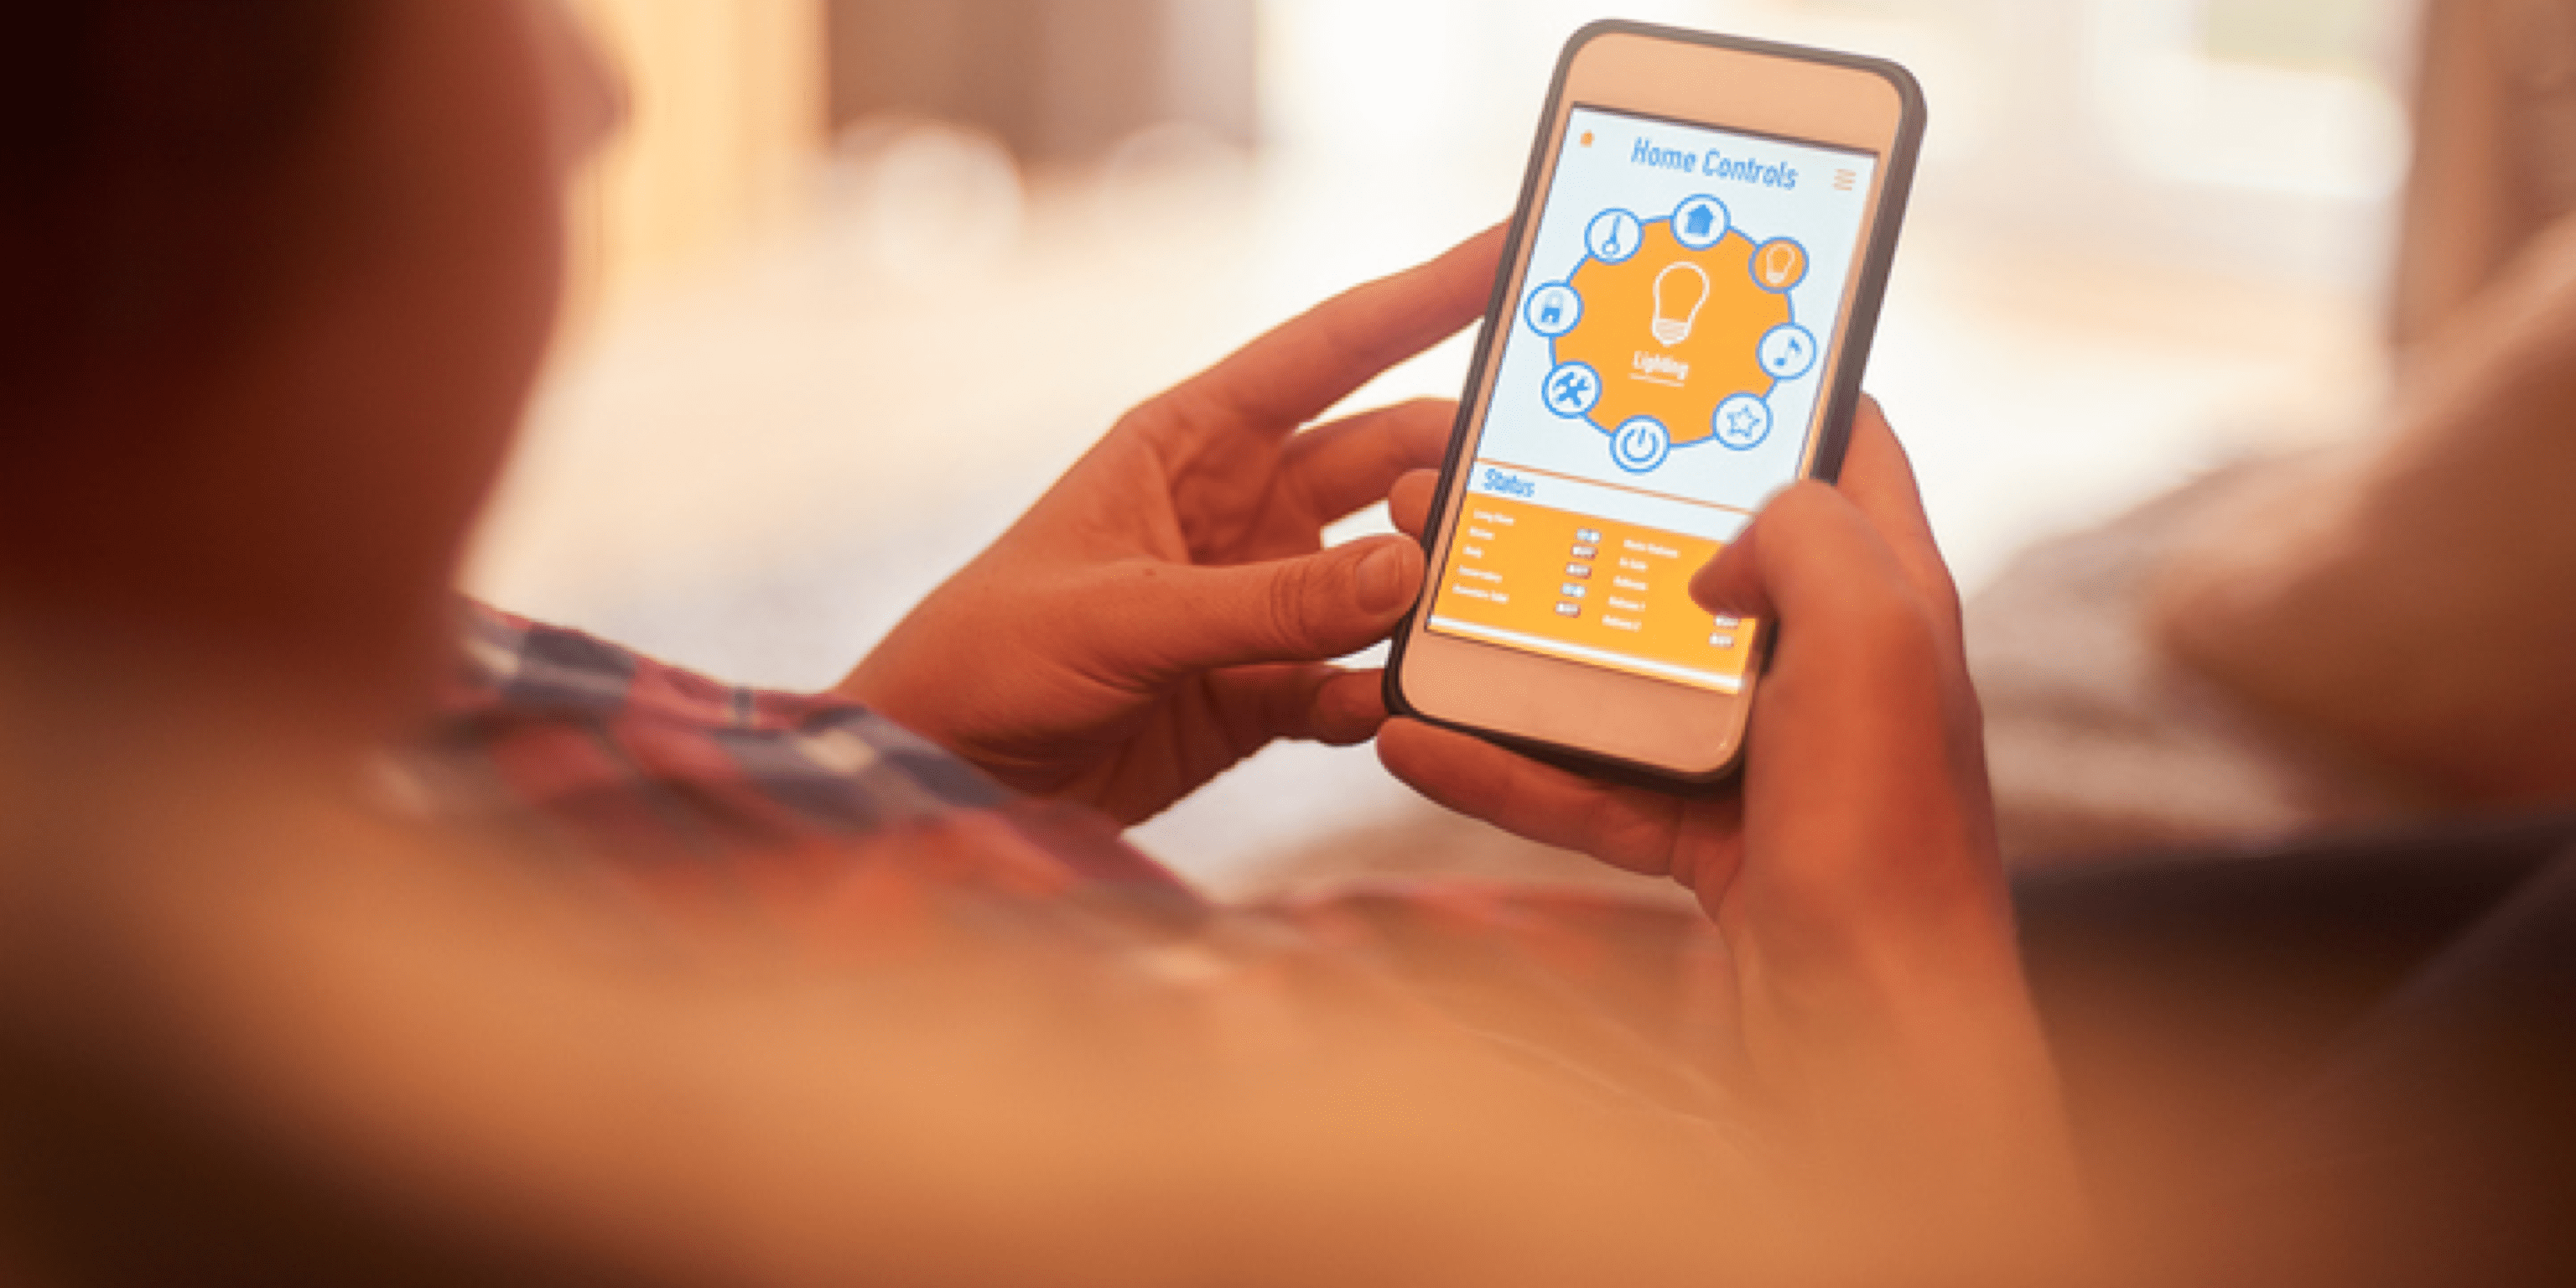 5c2b8cf50f7 What Makes Your House a Smart Home? How Home Automation Protocols Work